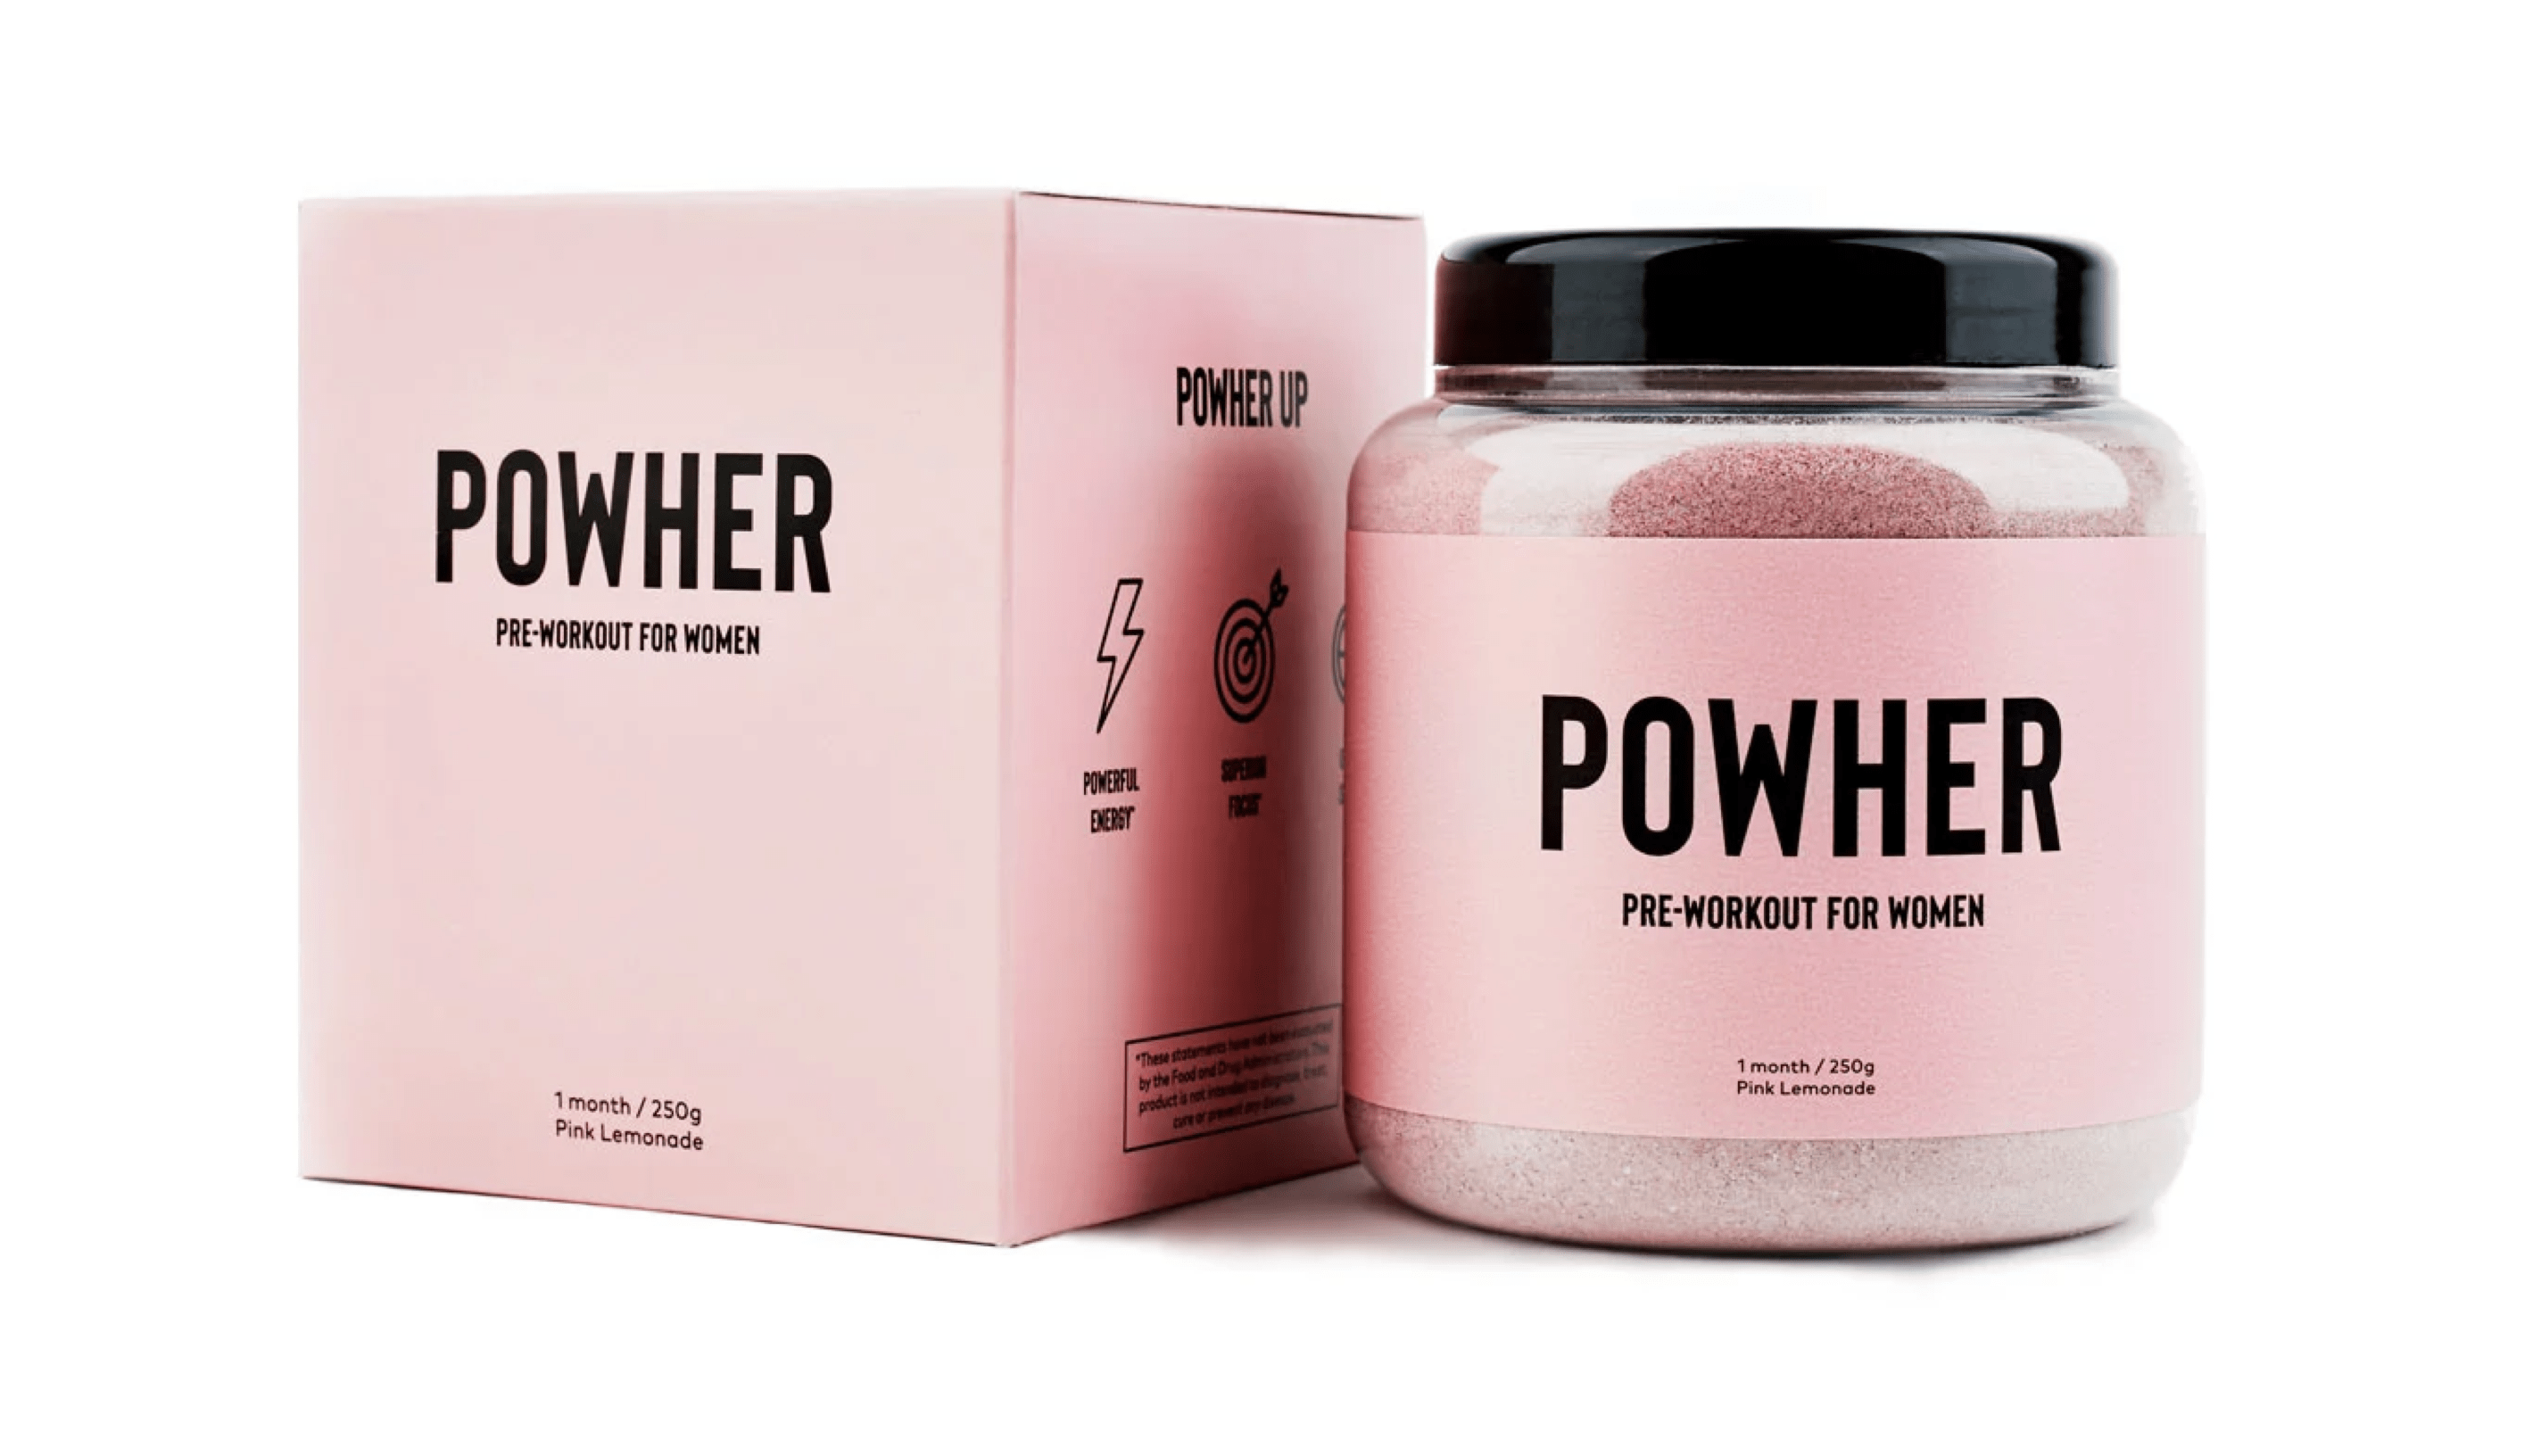 Ultimate Life Powher Review